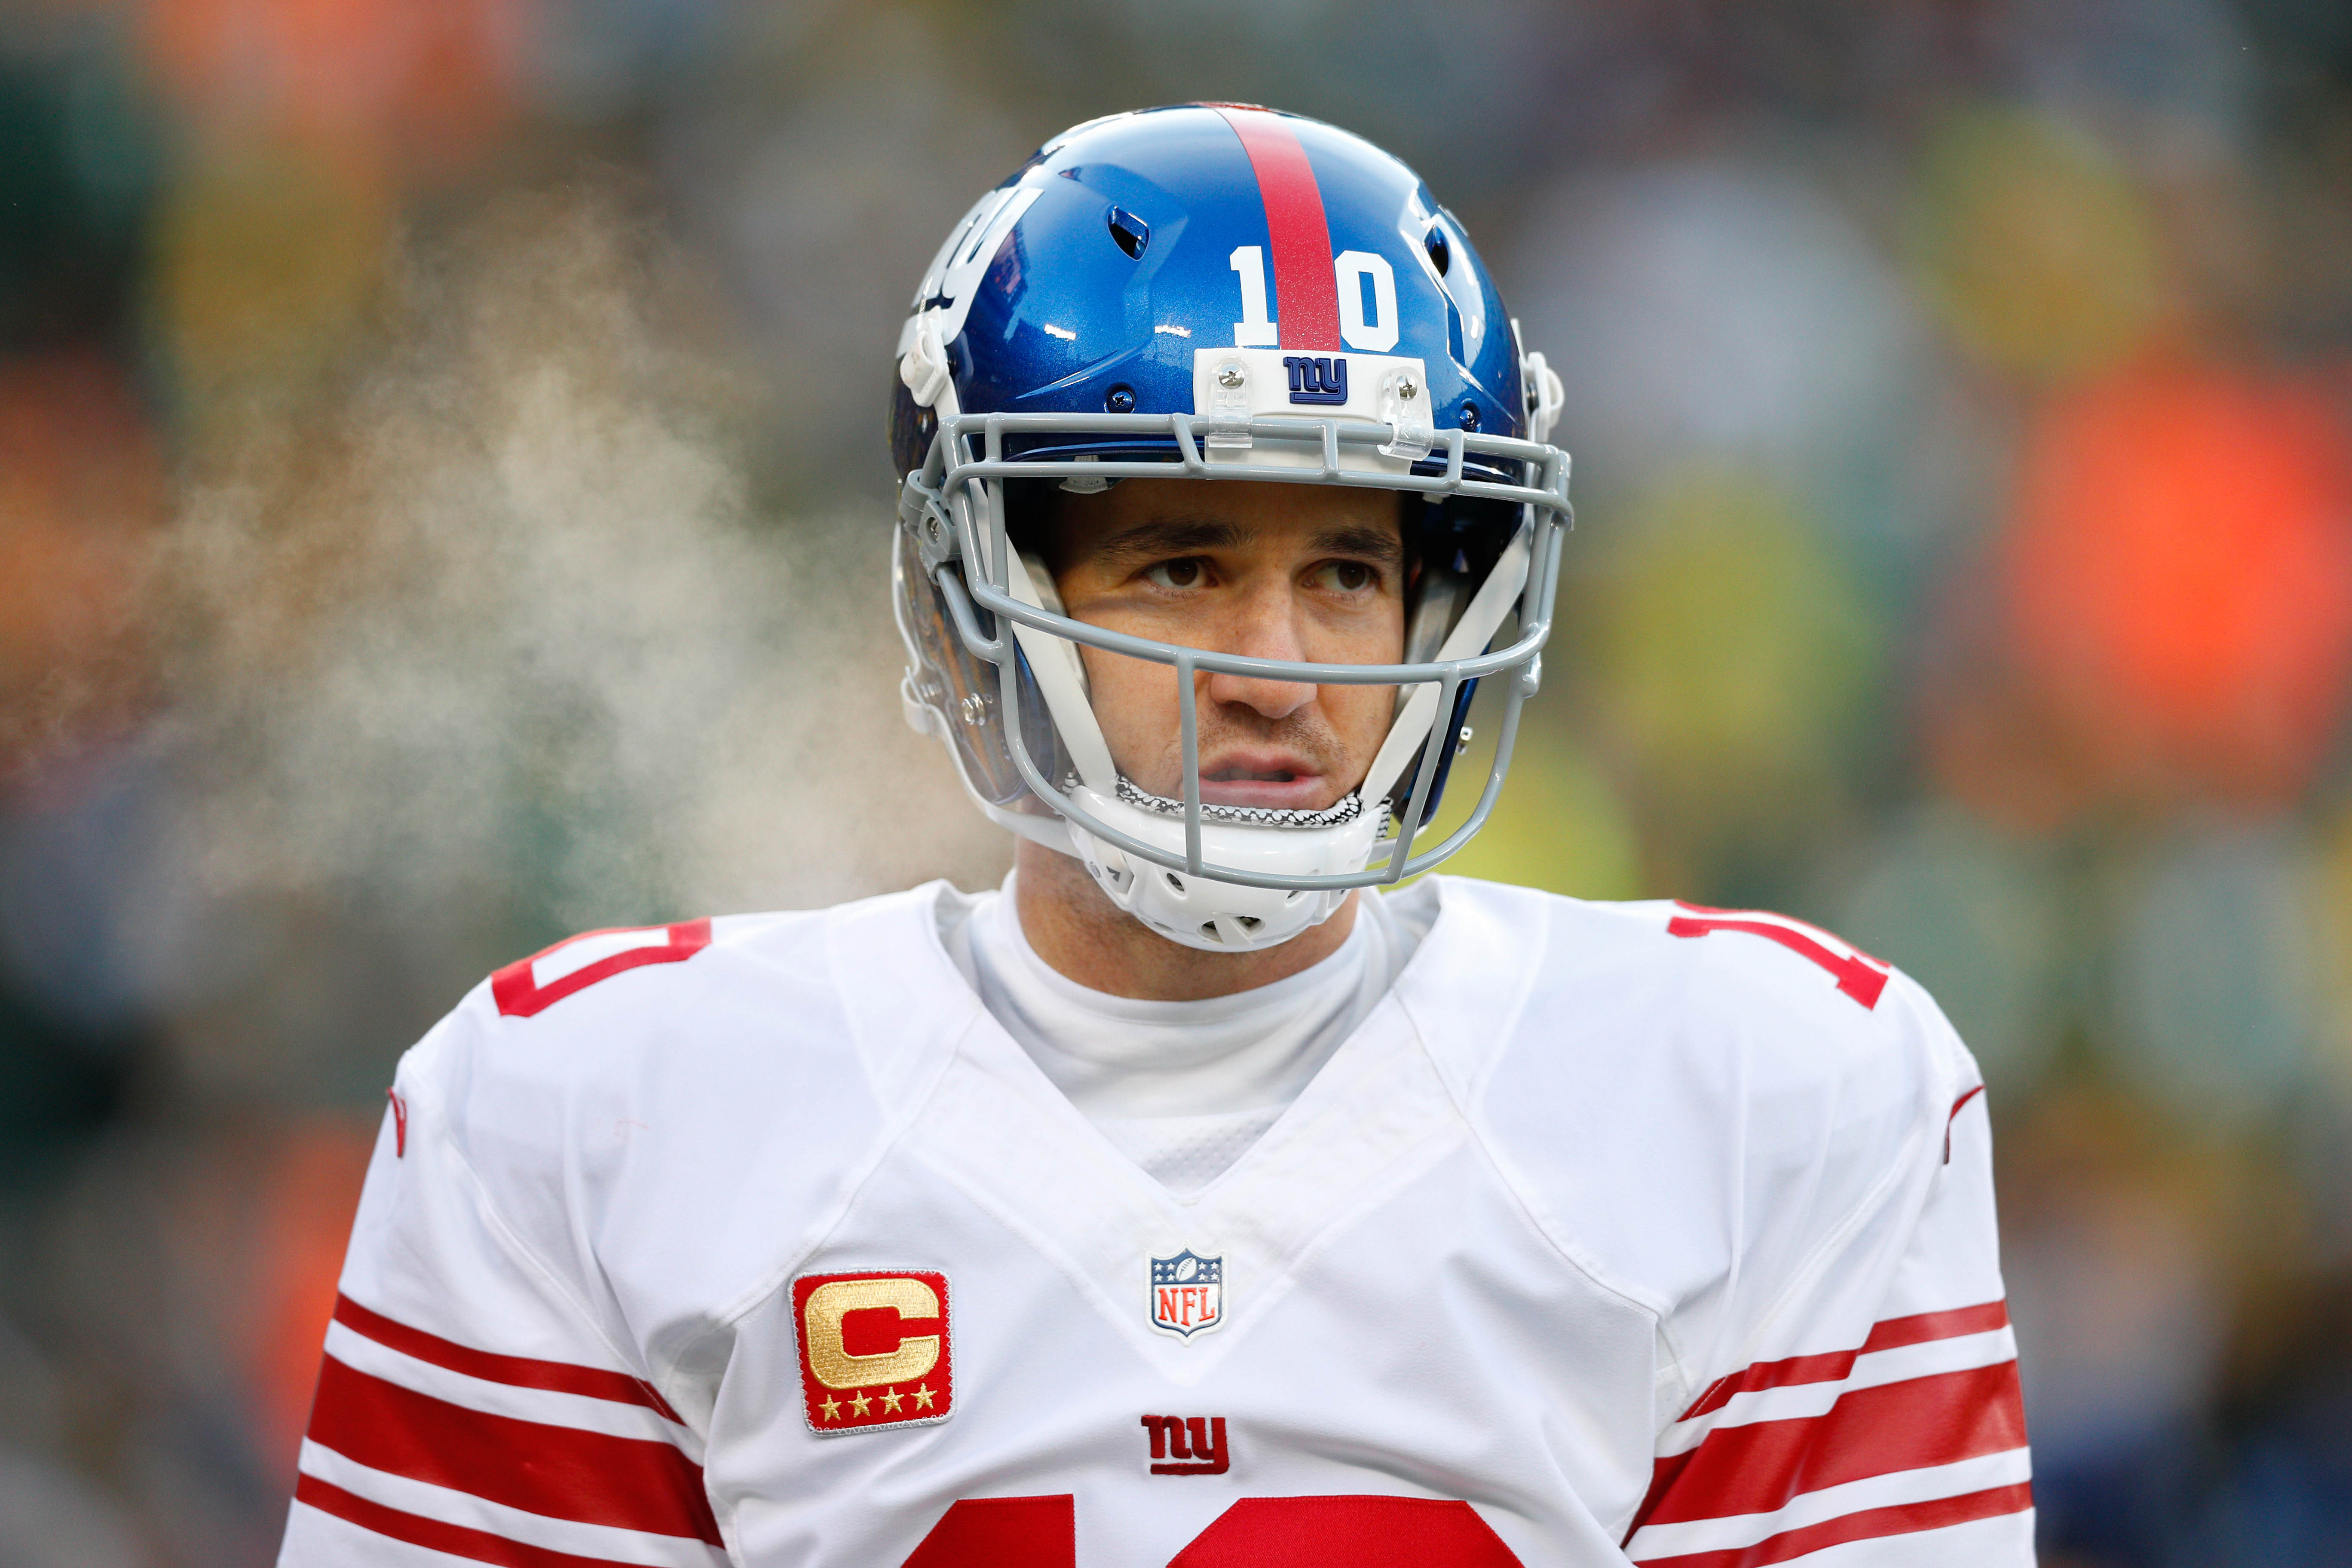 9823937-nfl-nfc-wild-card-new-york-giants-at-green-bay-packers-1